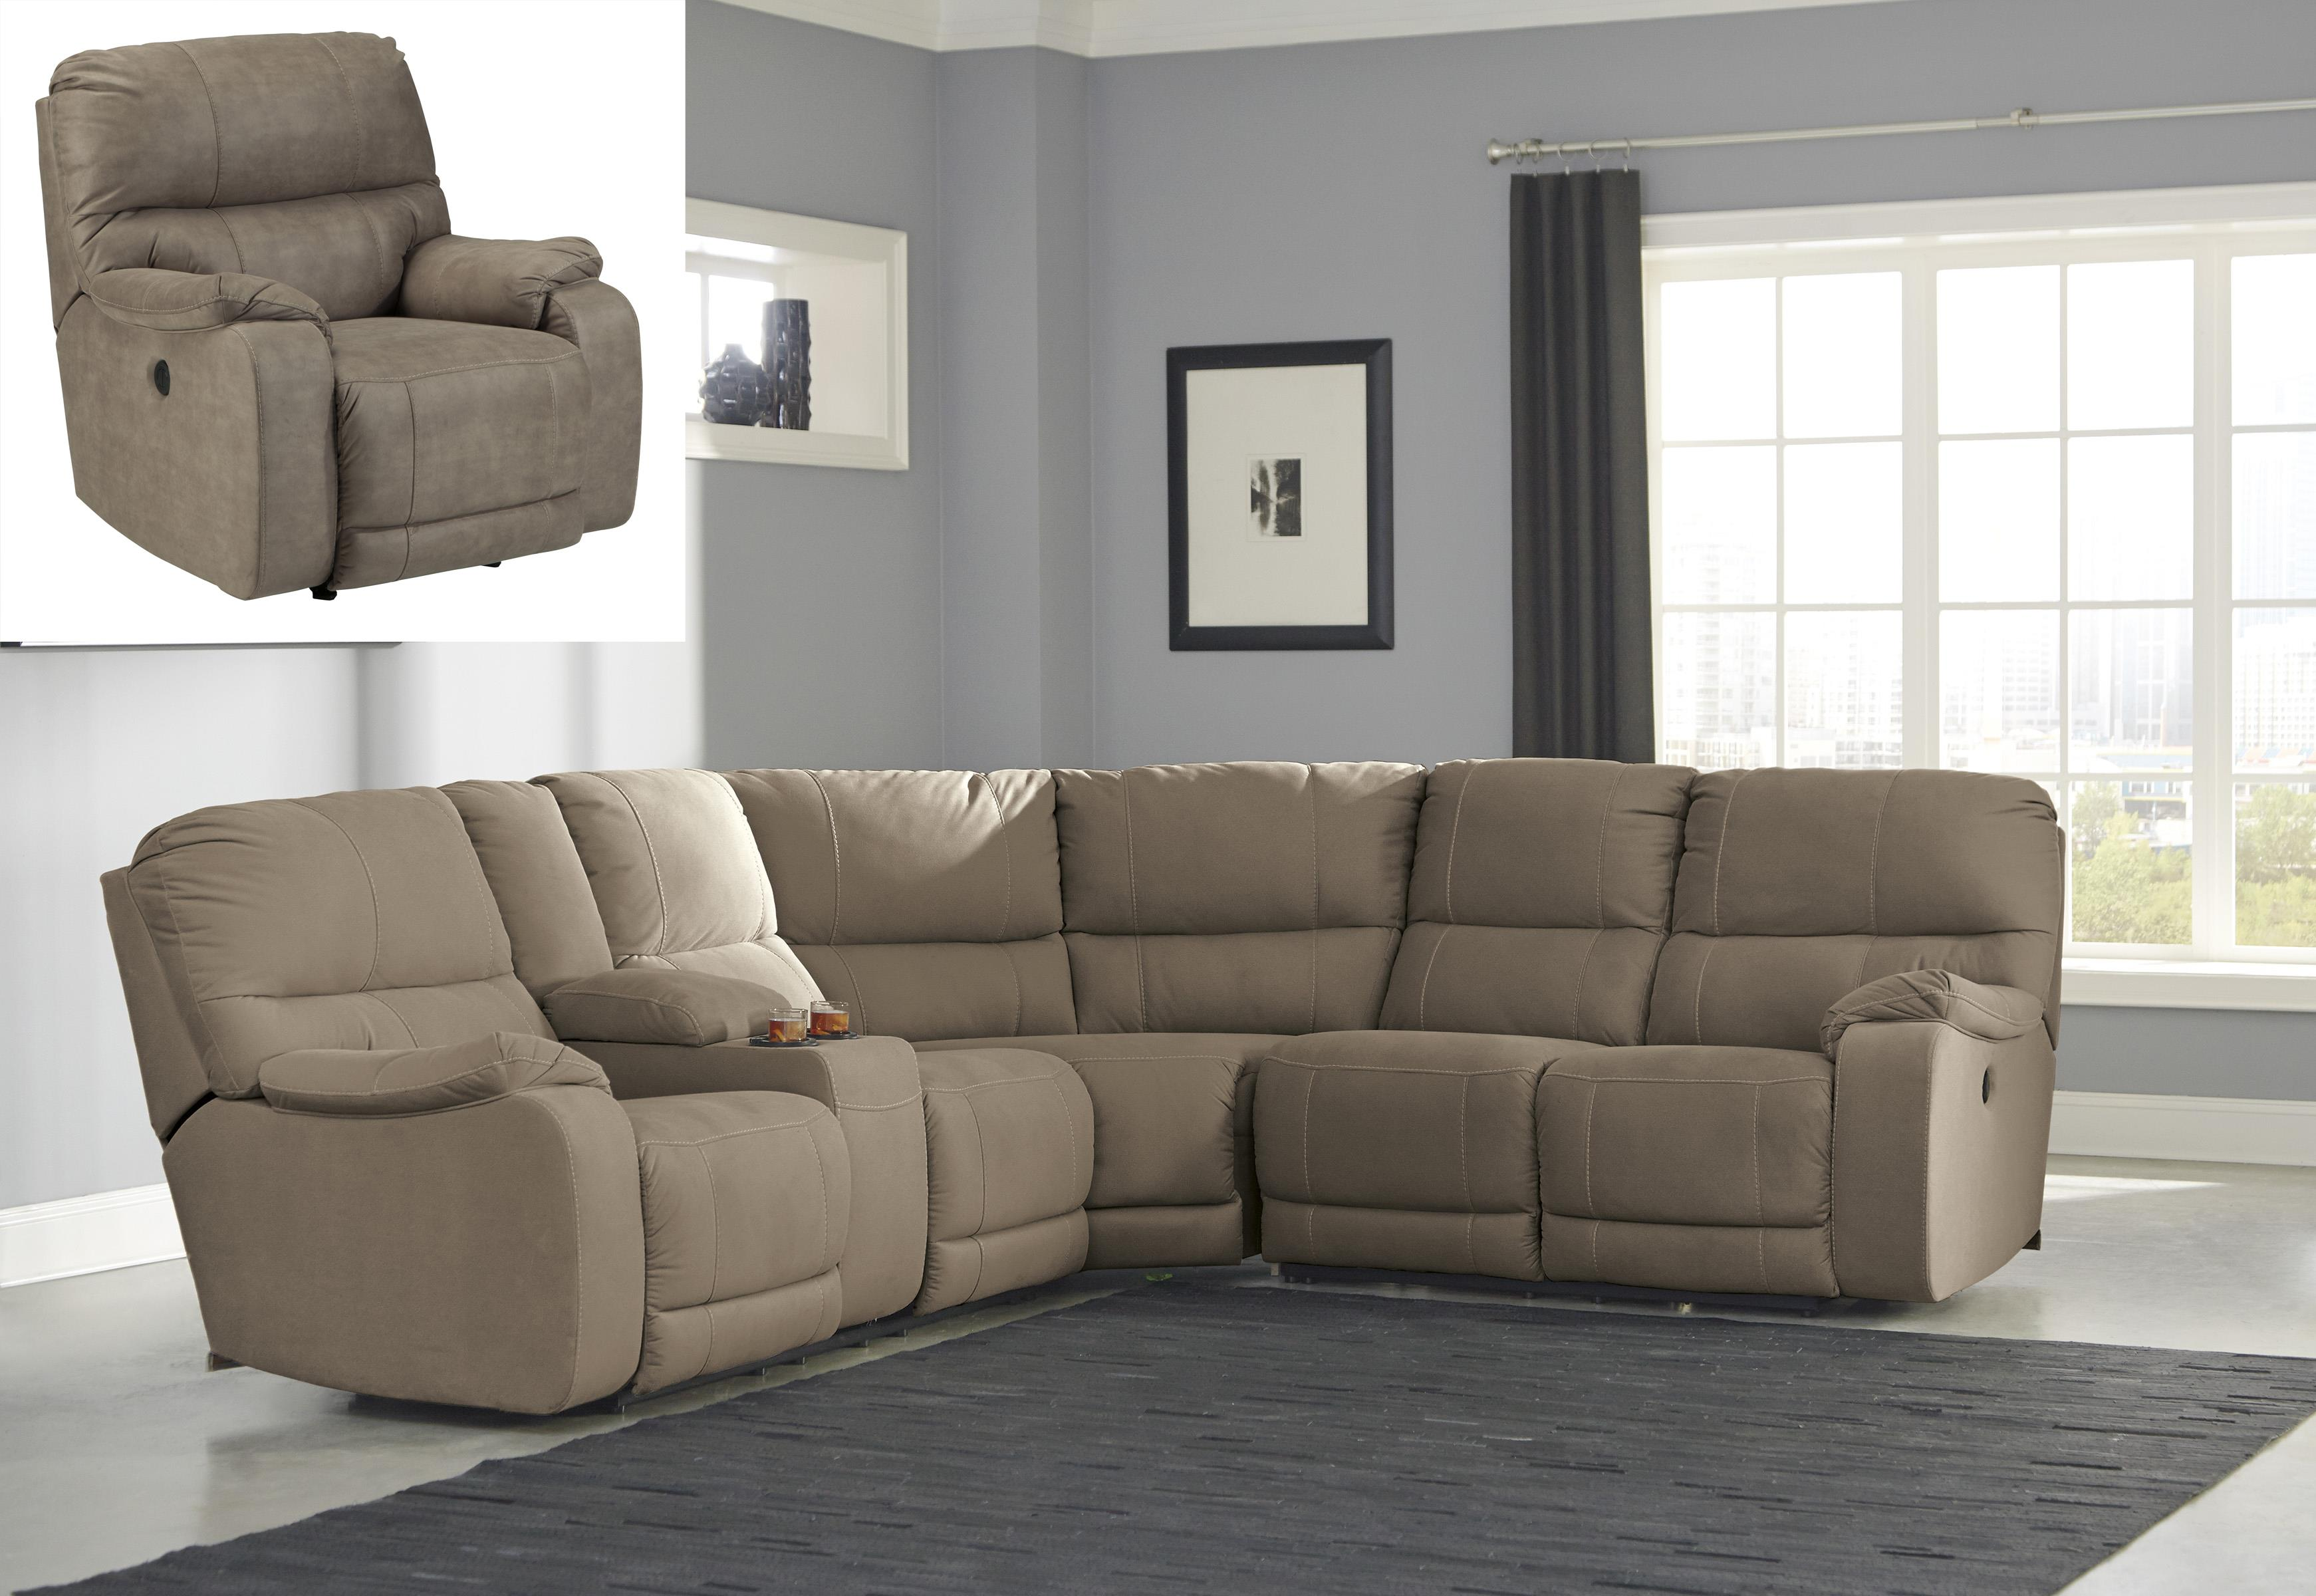 Benchcraft Bohannon Reclining Living Room Group - Item Number: 57403 Living Room Group 1